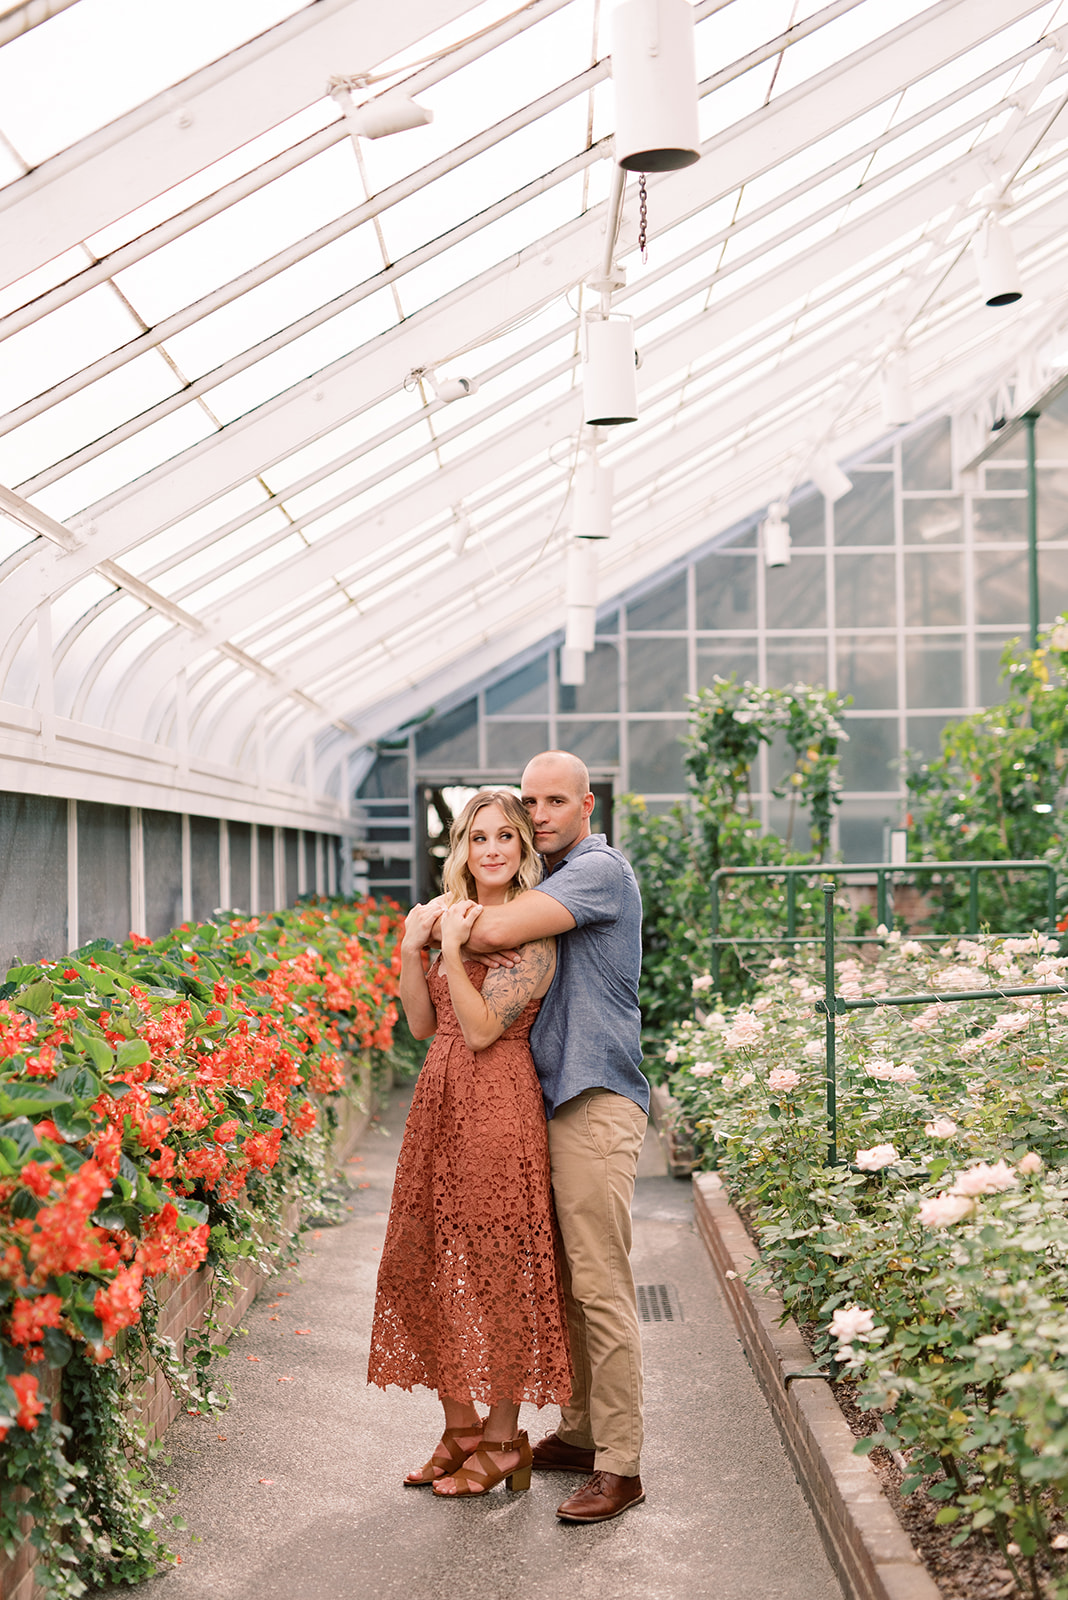 Engagement photos in a greenhouse at Longwood Gardens.